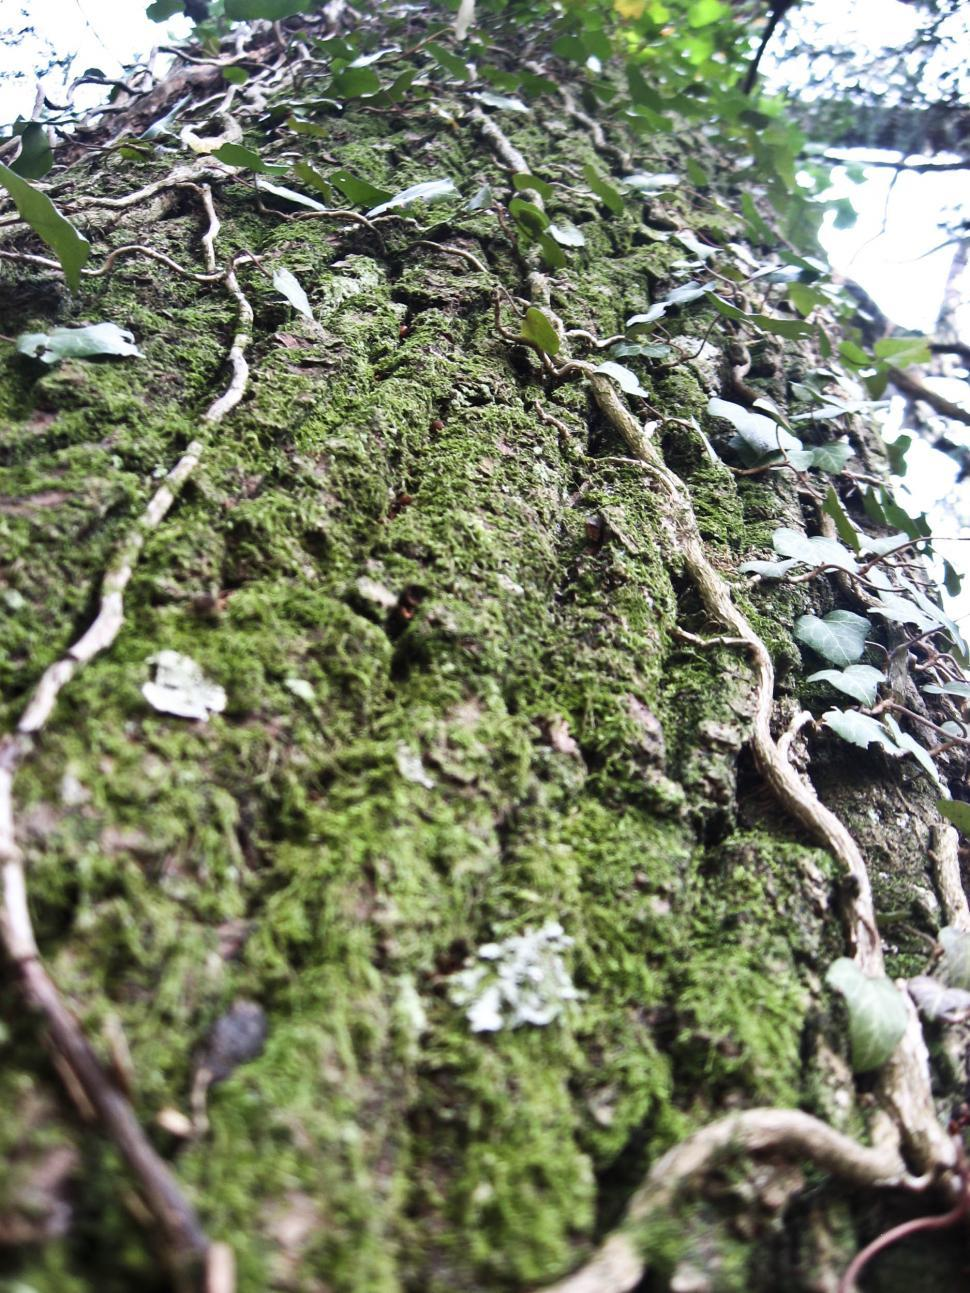 Download Free Stock HD Photo of mossy tree Online